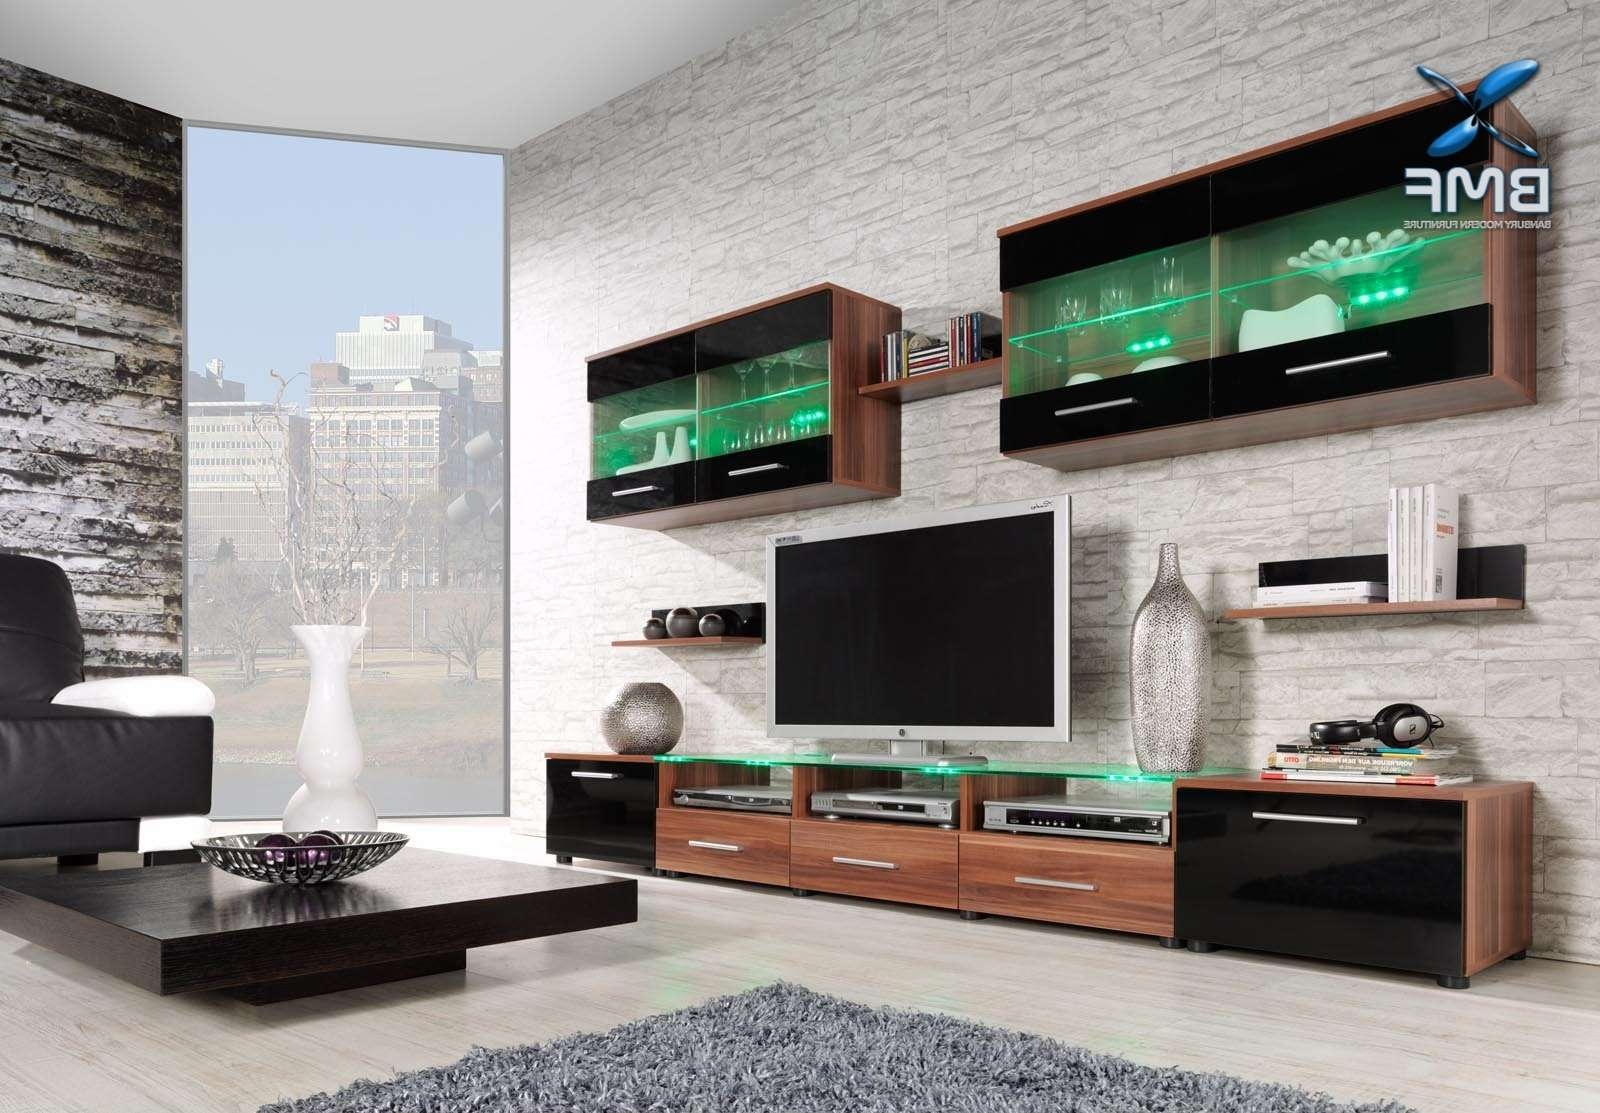 Cama Exclusive Range Of Wall Units – Banbury Modern Furniture Ltd In Wall Display Units And Tv Cabinets (View 19 of 20)